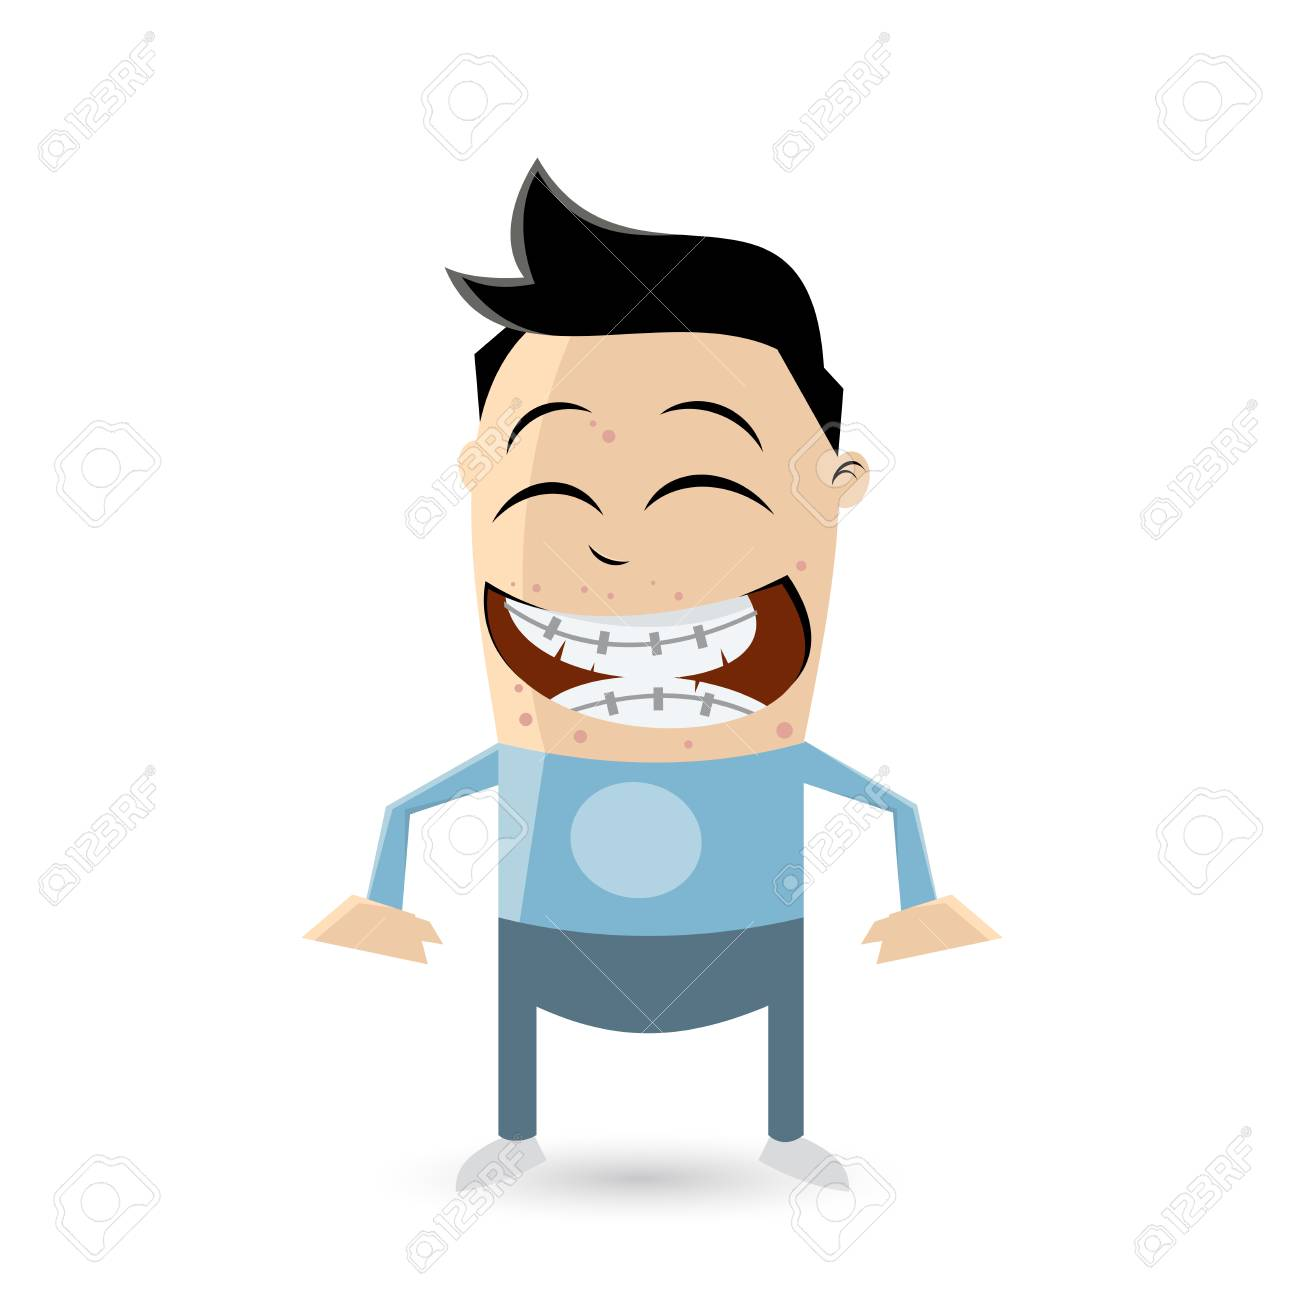 clipart of a funny teenager with acne and braces.